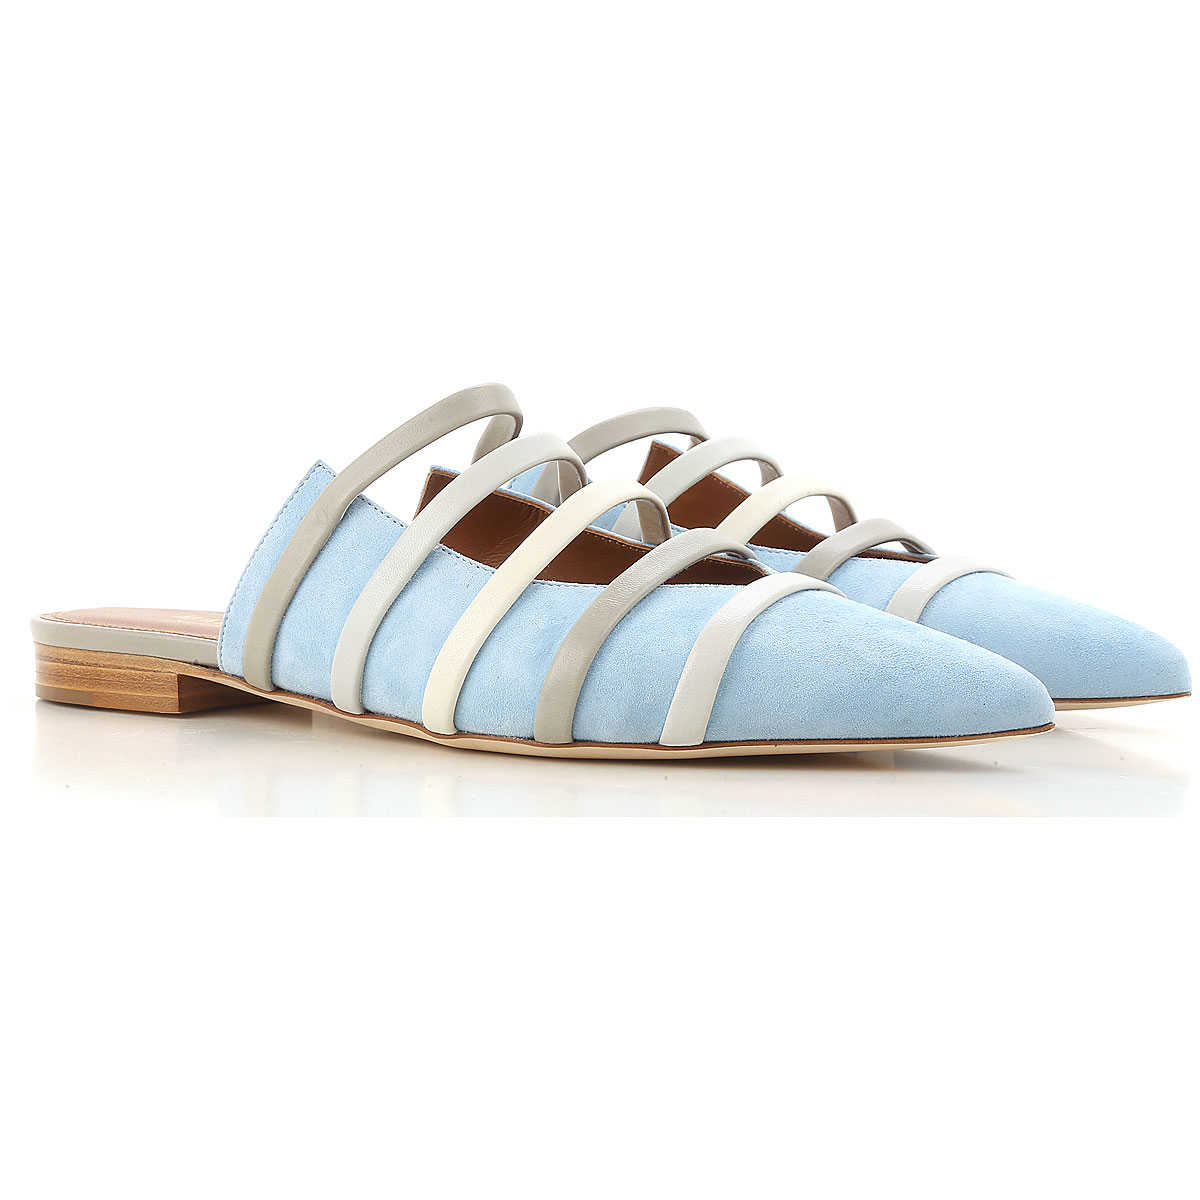 Malone Souliers Ballet Flats Ballerina Shoes for Women On Sale in Outlet